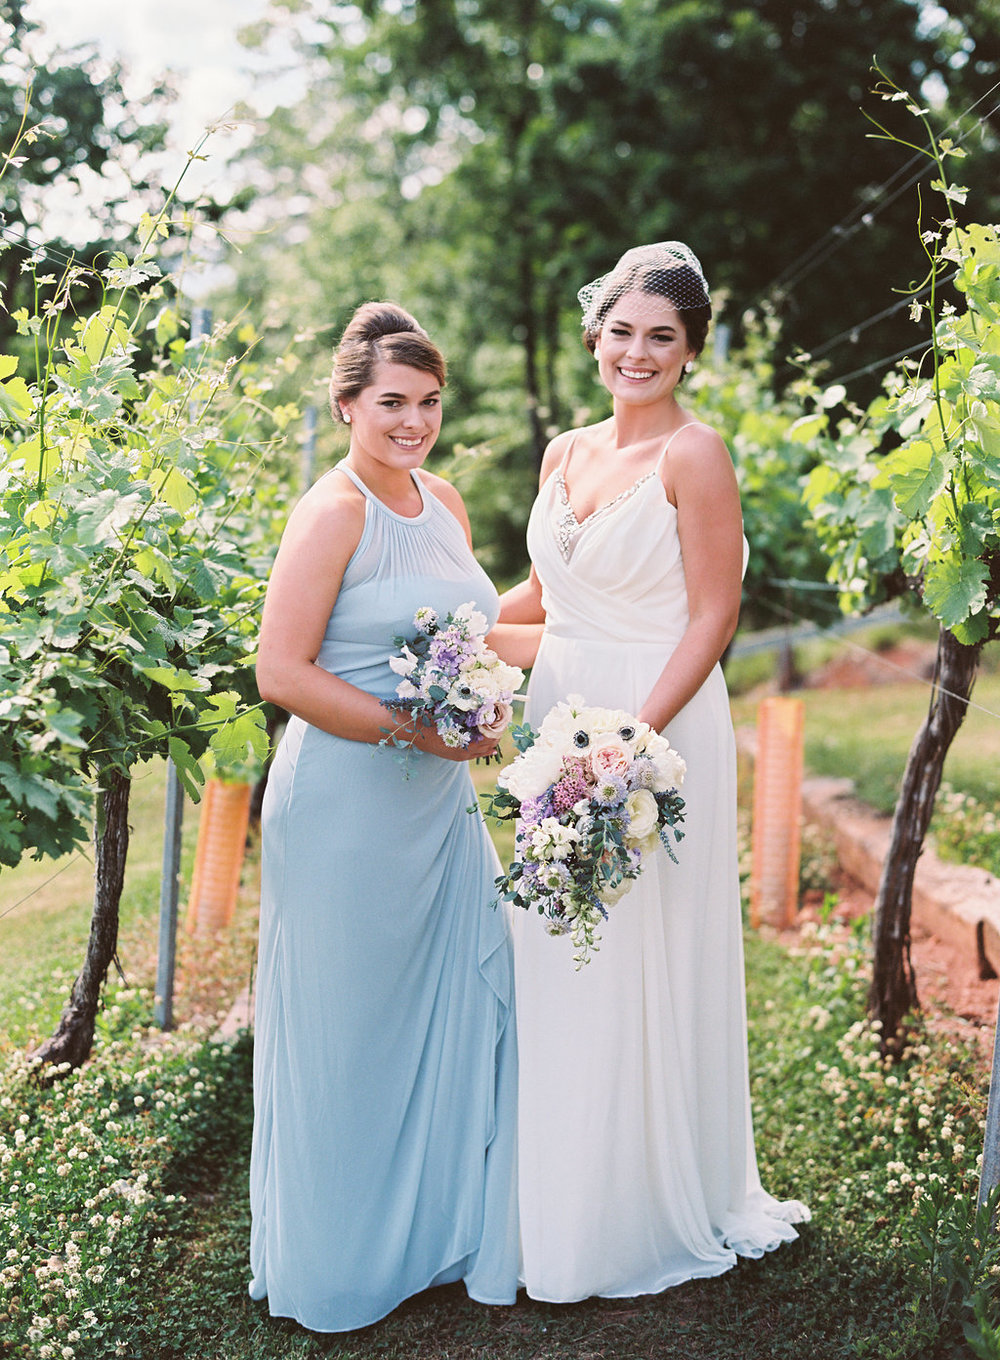 Jessica, the bride, with maid of honor, Heather. I just love this portrait of these sweet sisters/twins!   Cottrell Photography  |  Wolf Mountain Vineyards